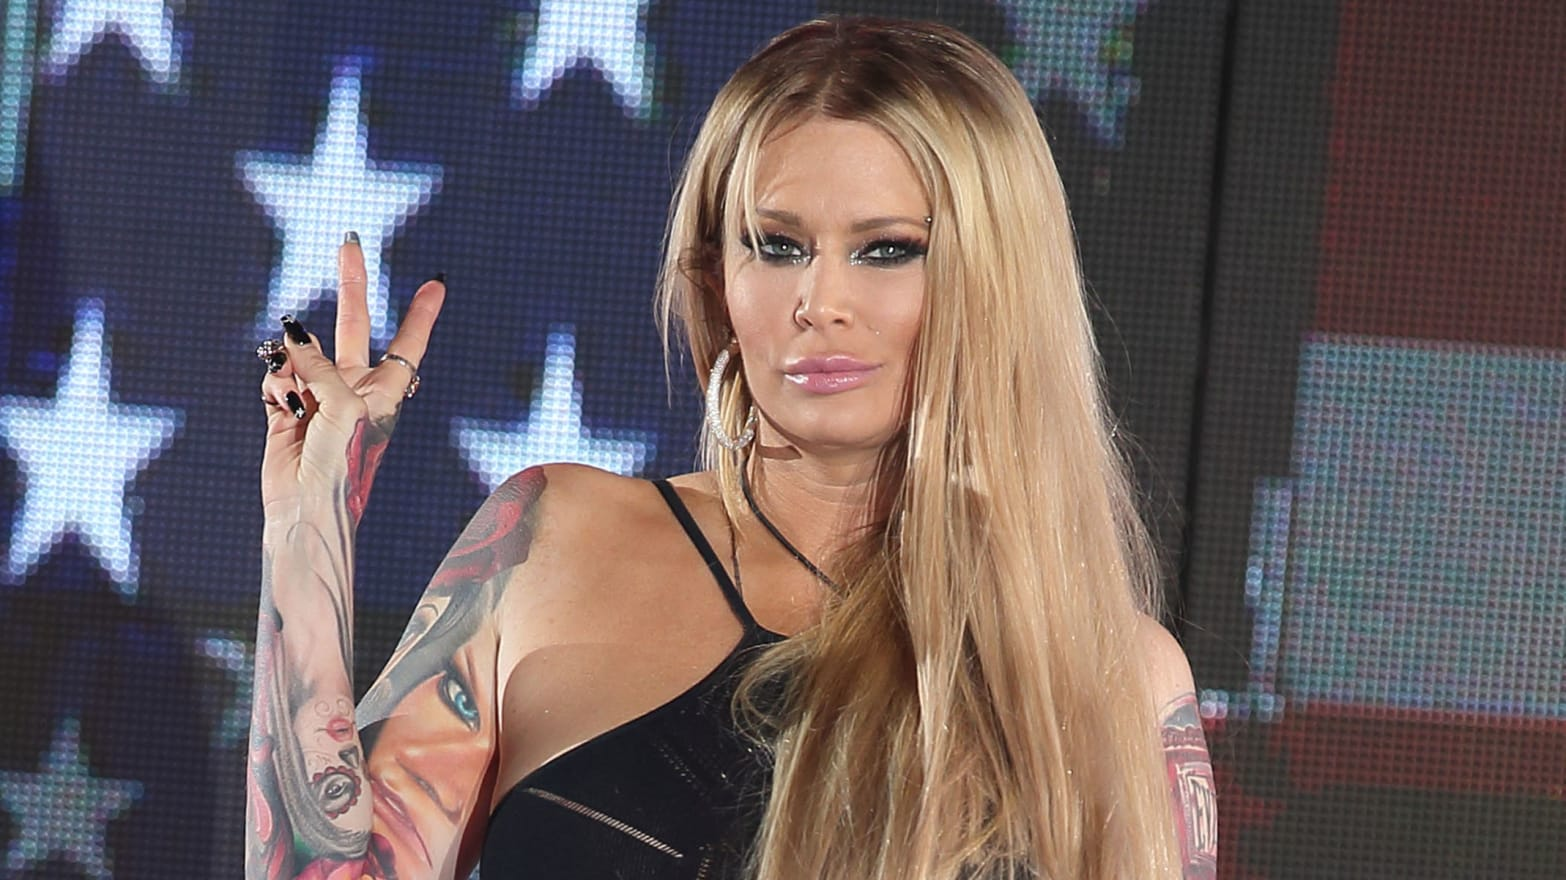 Barack Obama Porn queen of porn' jenna jameson defends israel, bashes obama